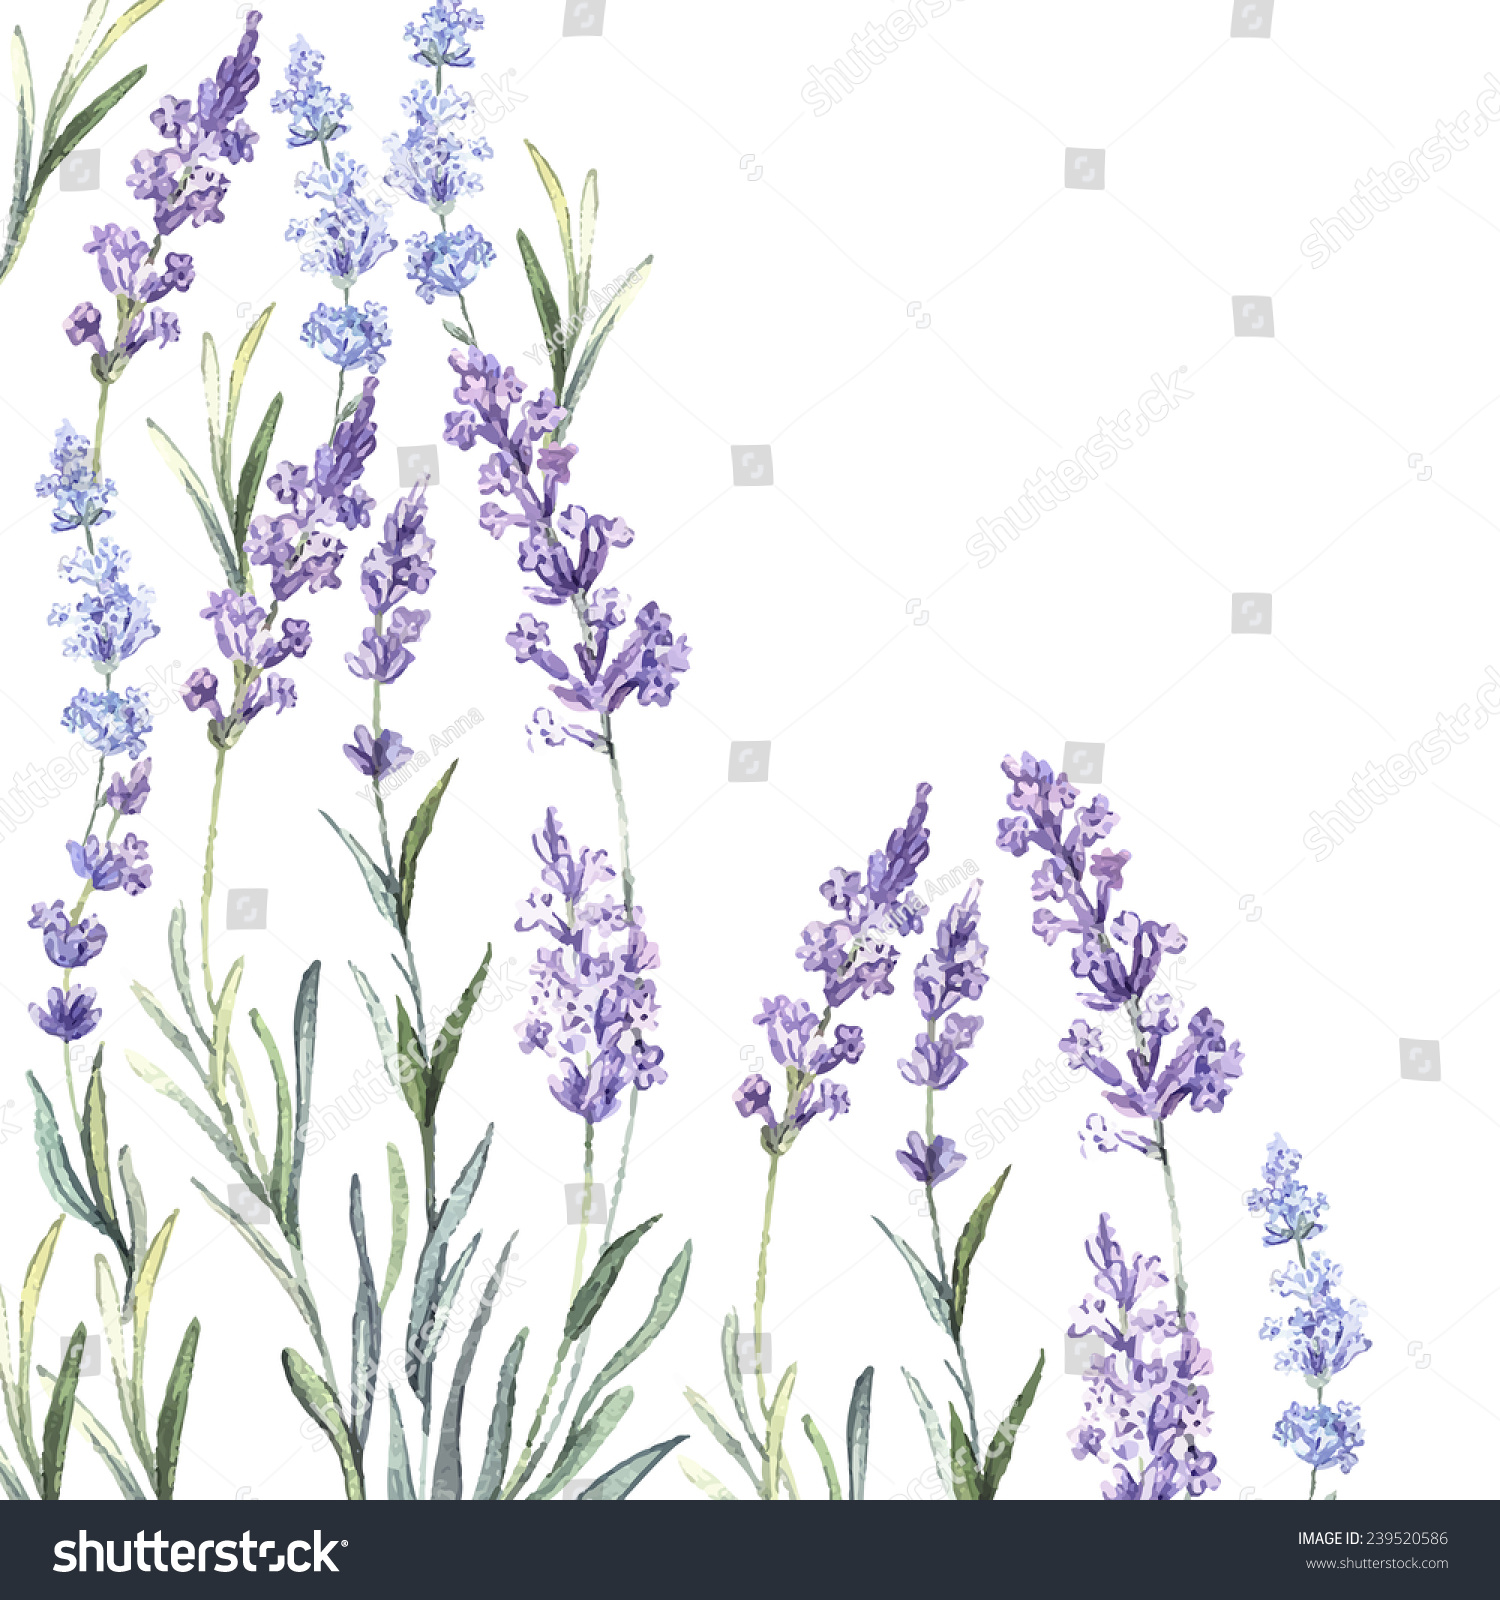 watercolor vintage background lavender watercolorvector